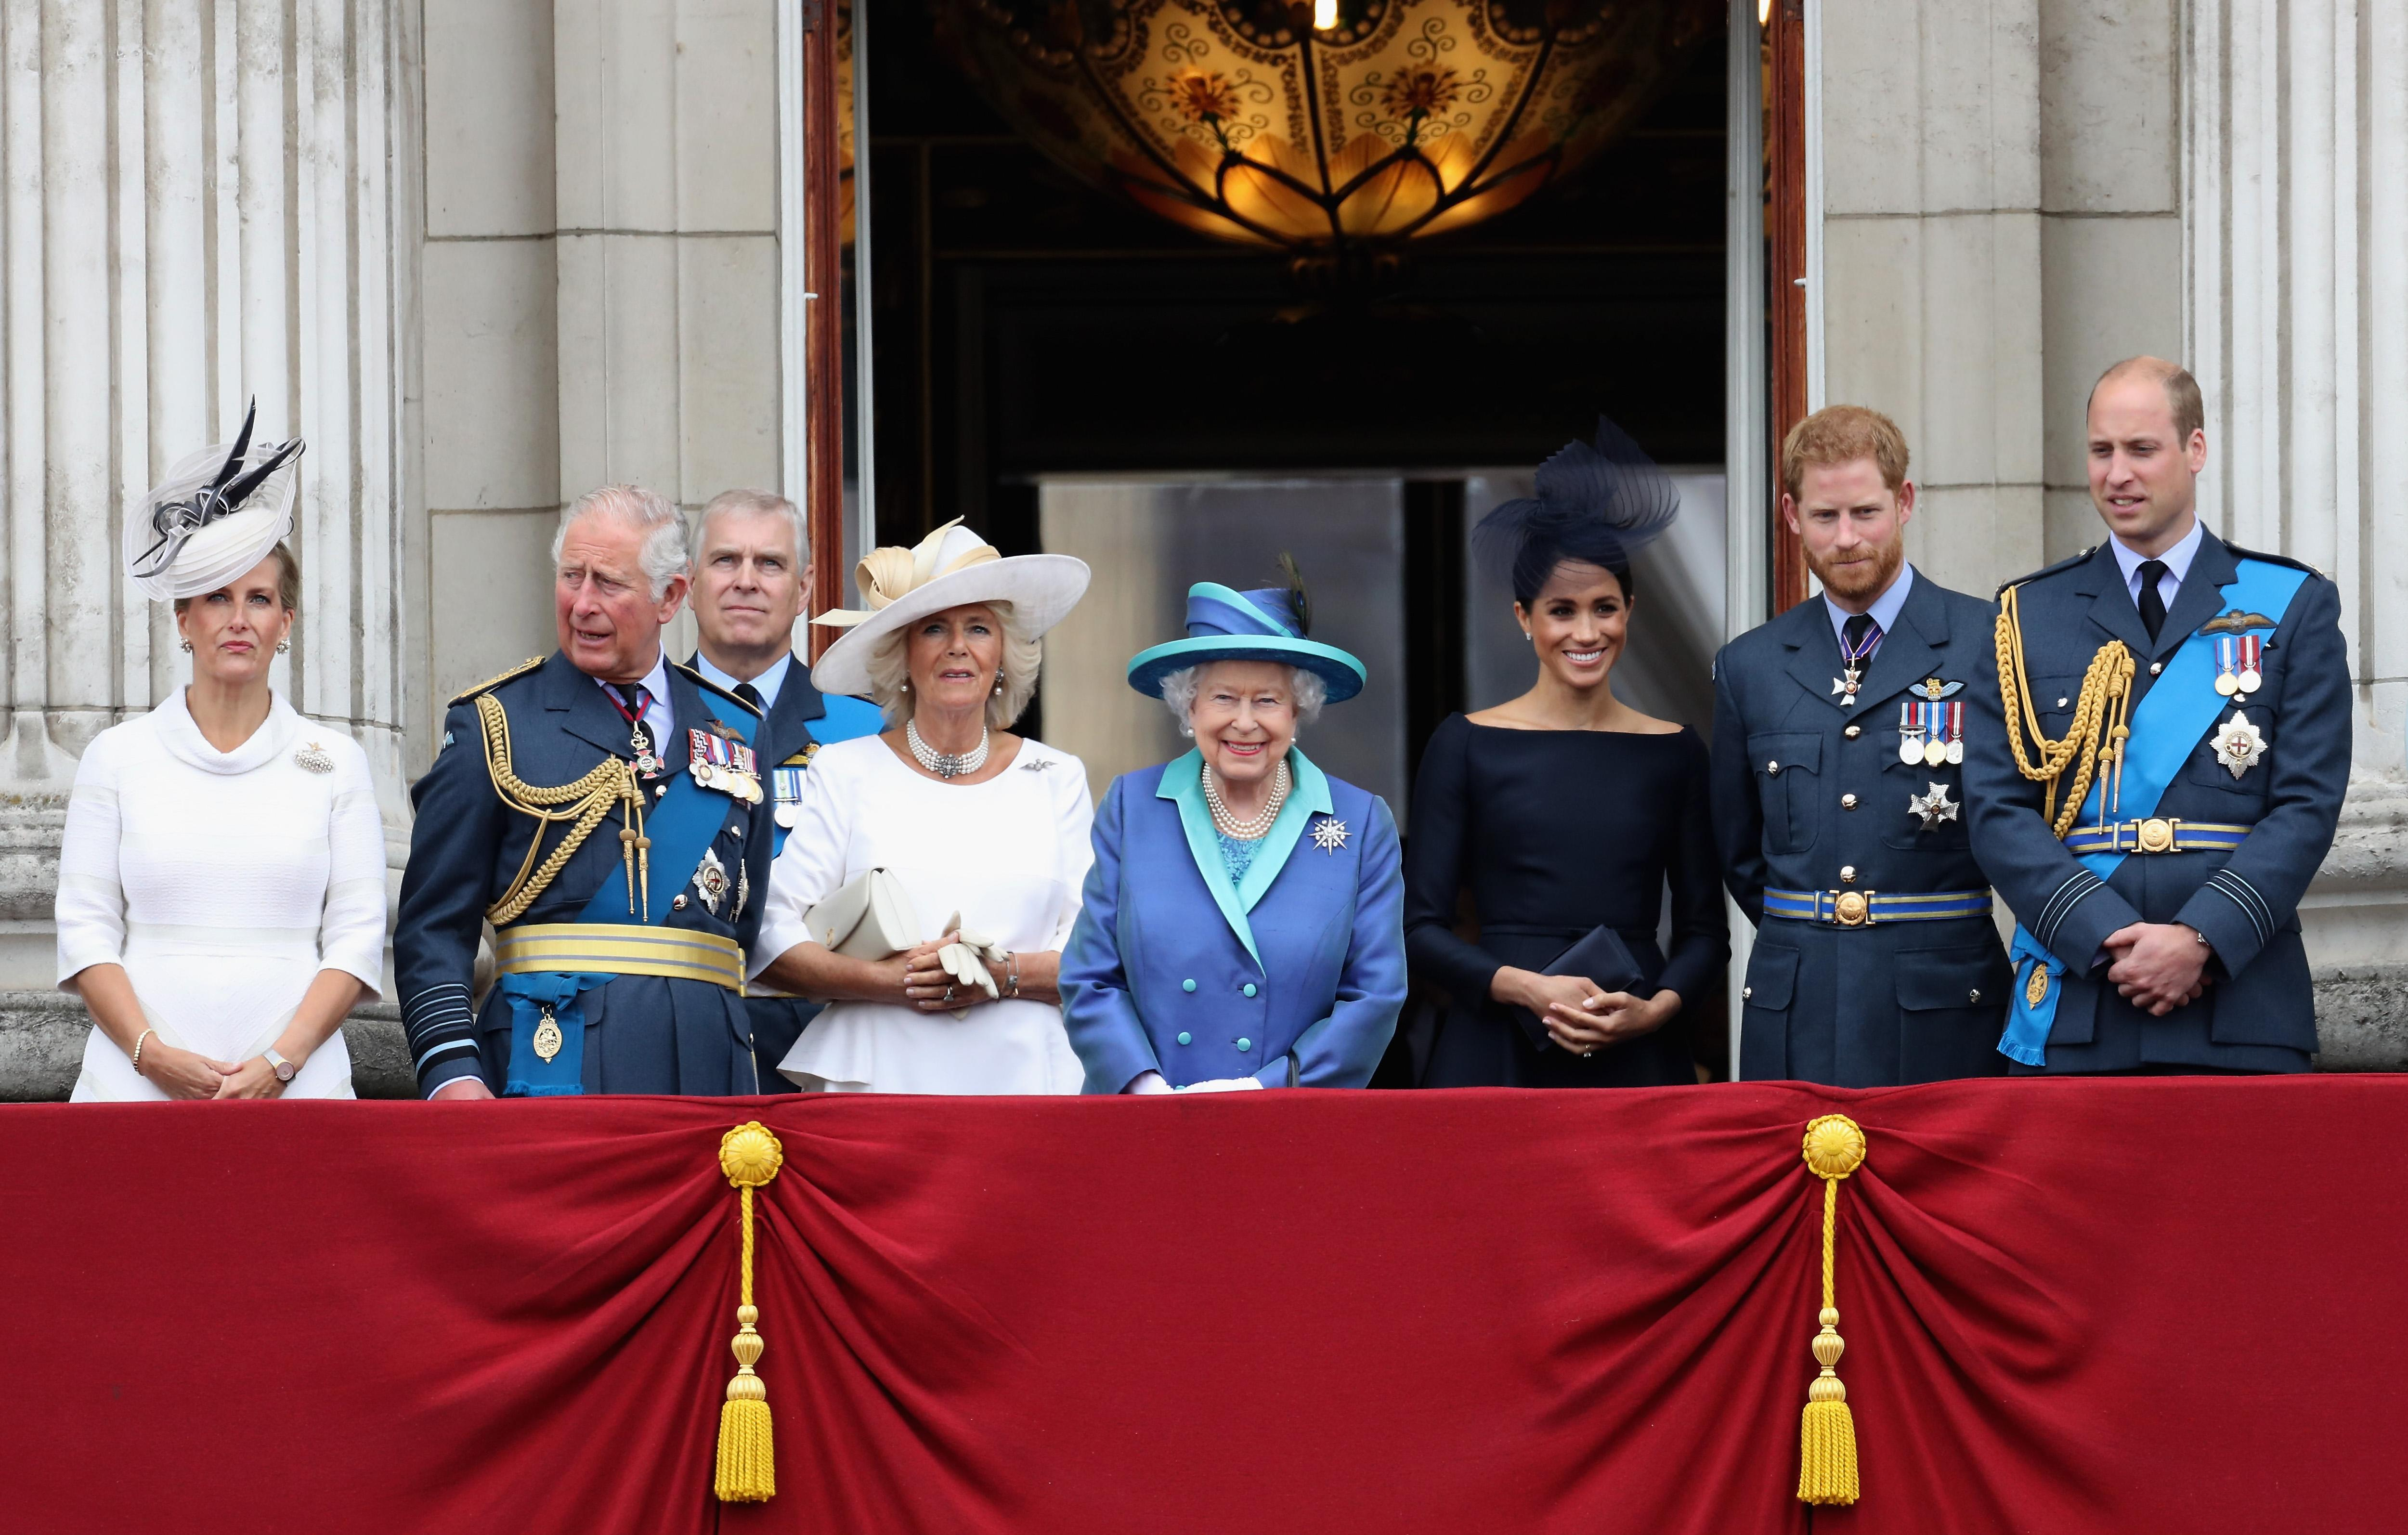 Royal Family Christmas.What Does The Queen Eat On Christmas Royal Family S Holiday